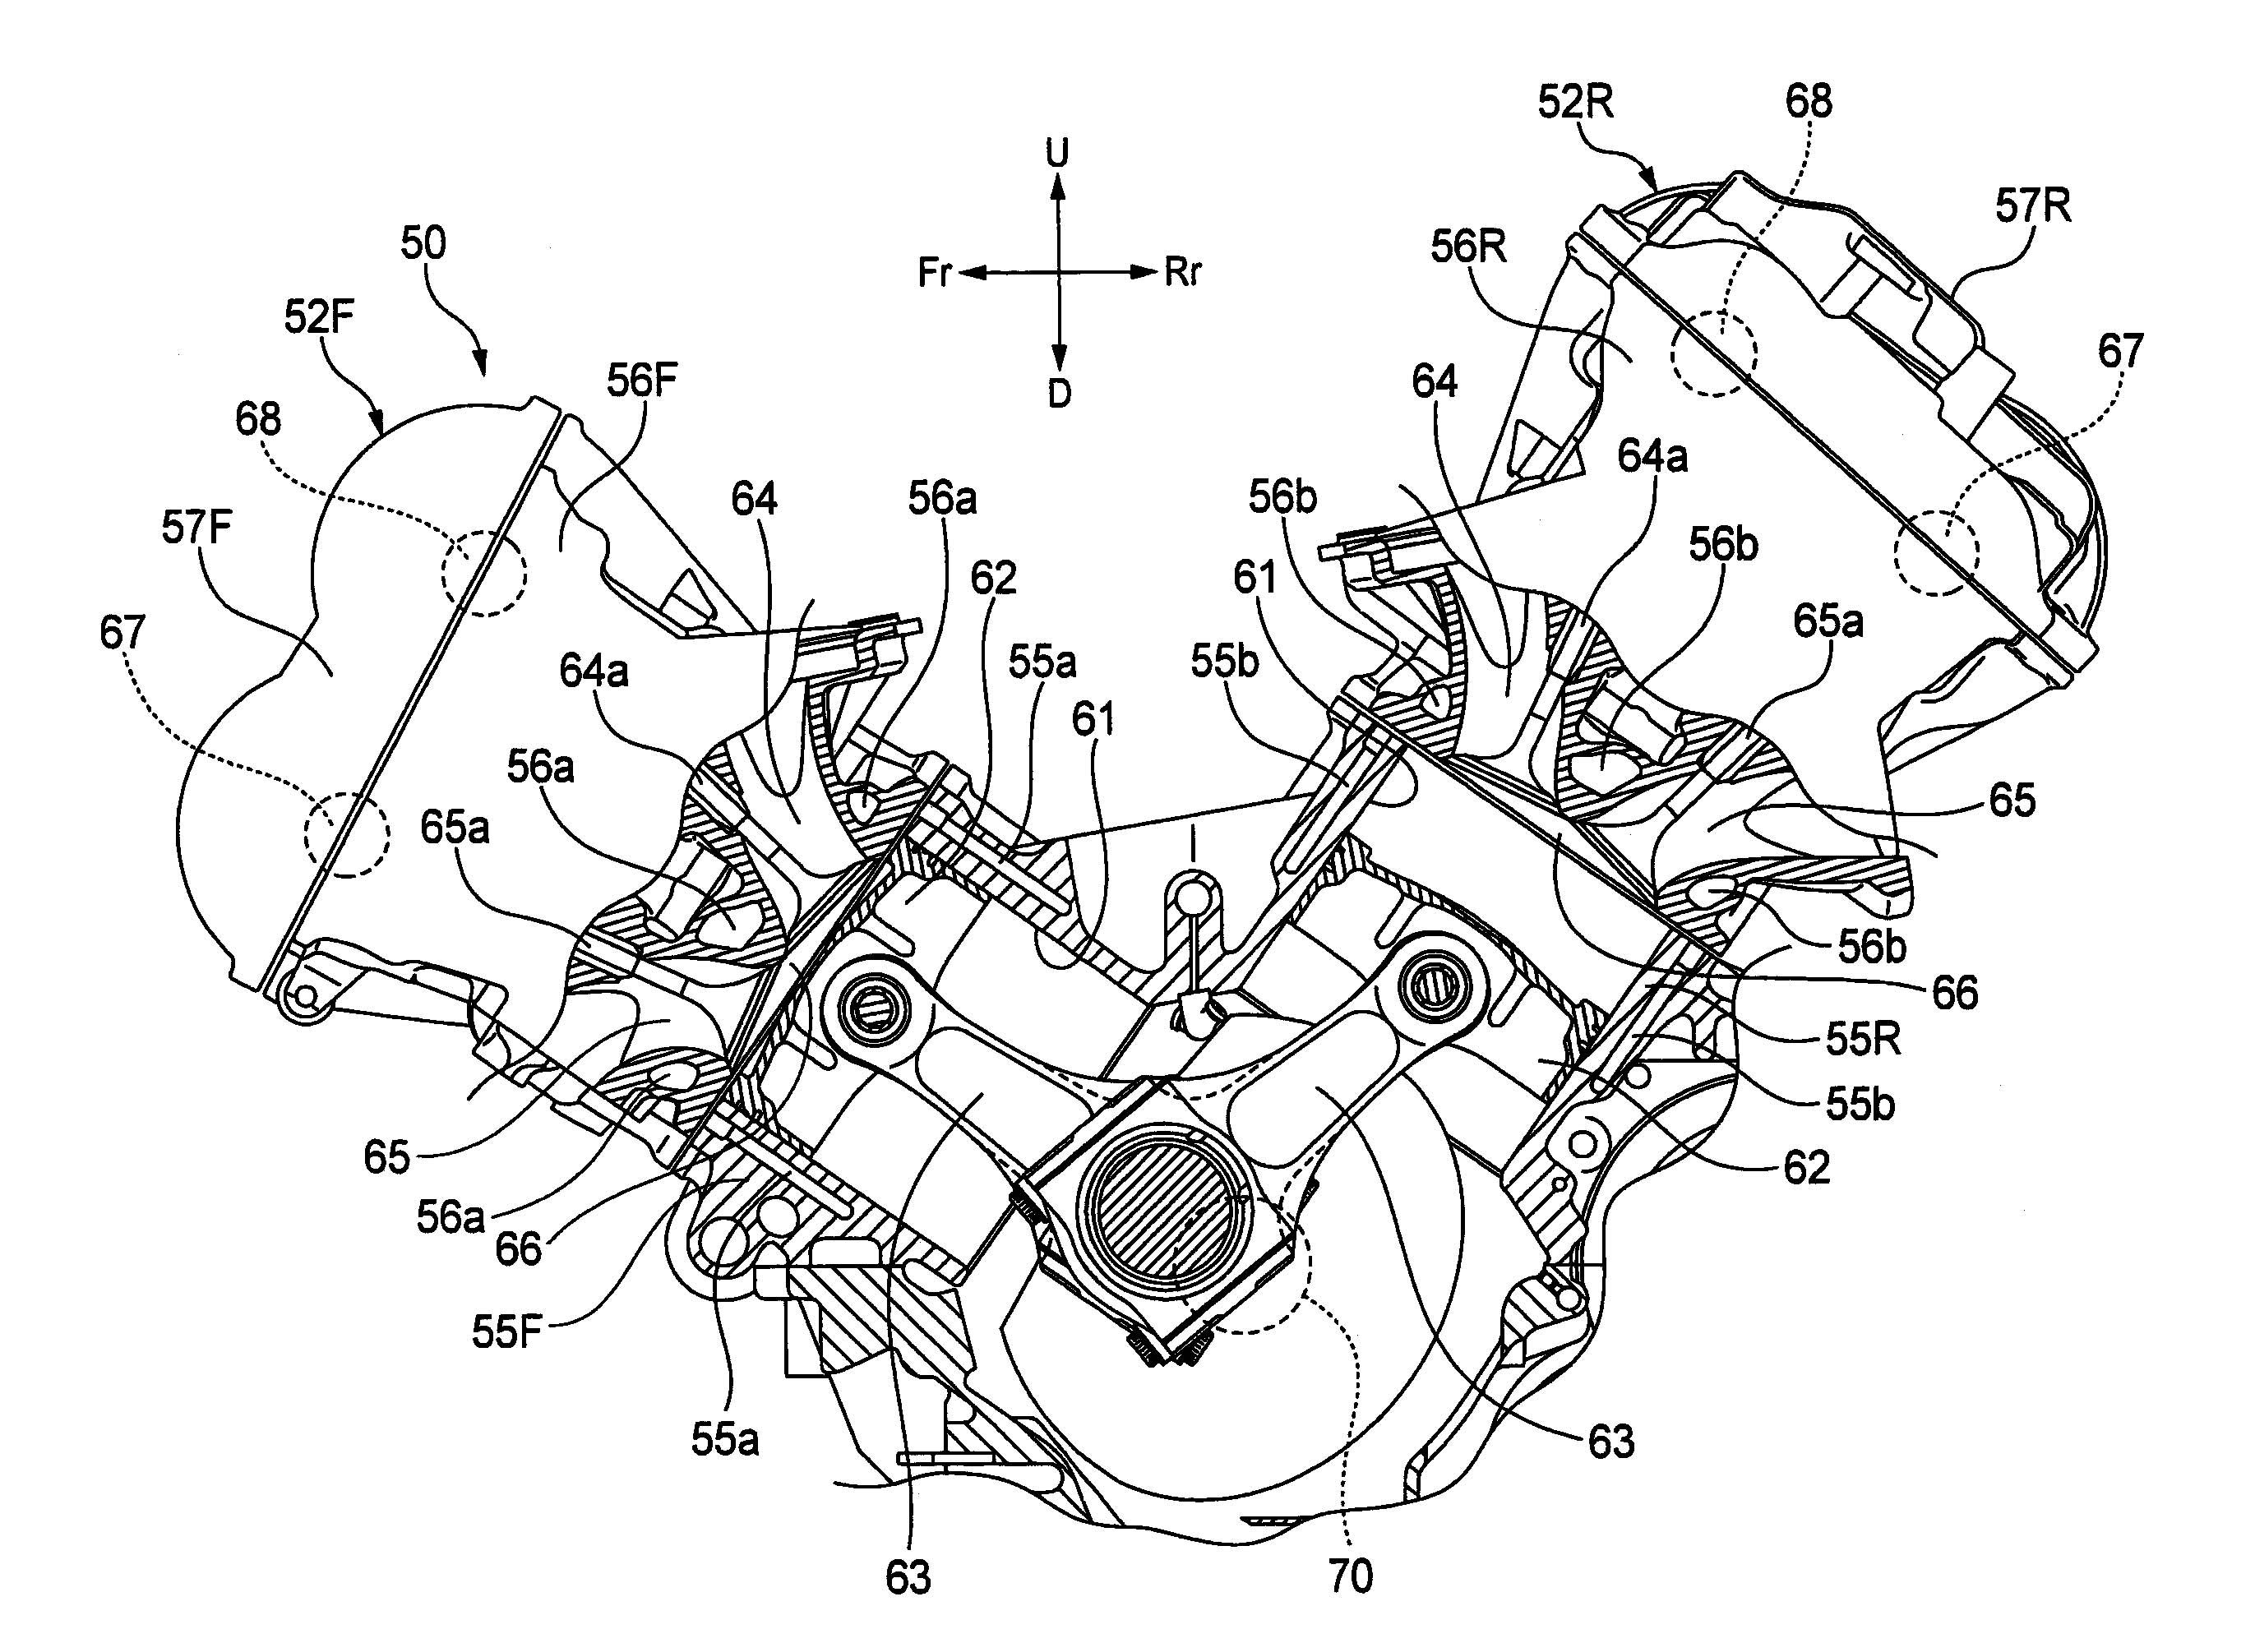 Motorcycle Engine Drawing At Free For Personal Use Diagram Art 2743x2010 Honda V4 Superbike Outed In Patent Photos